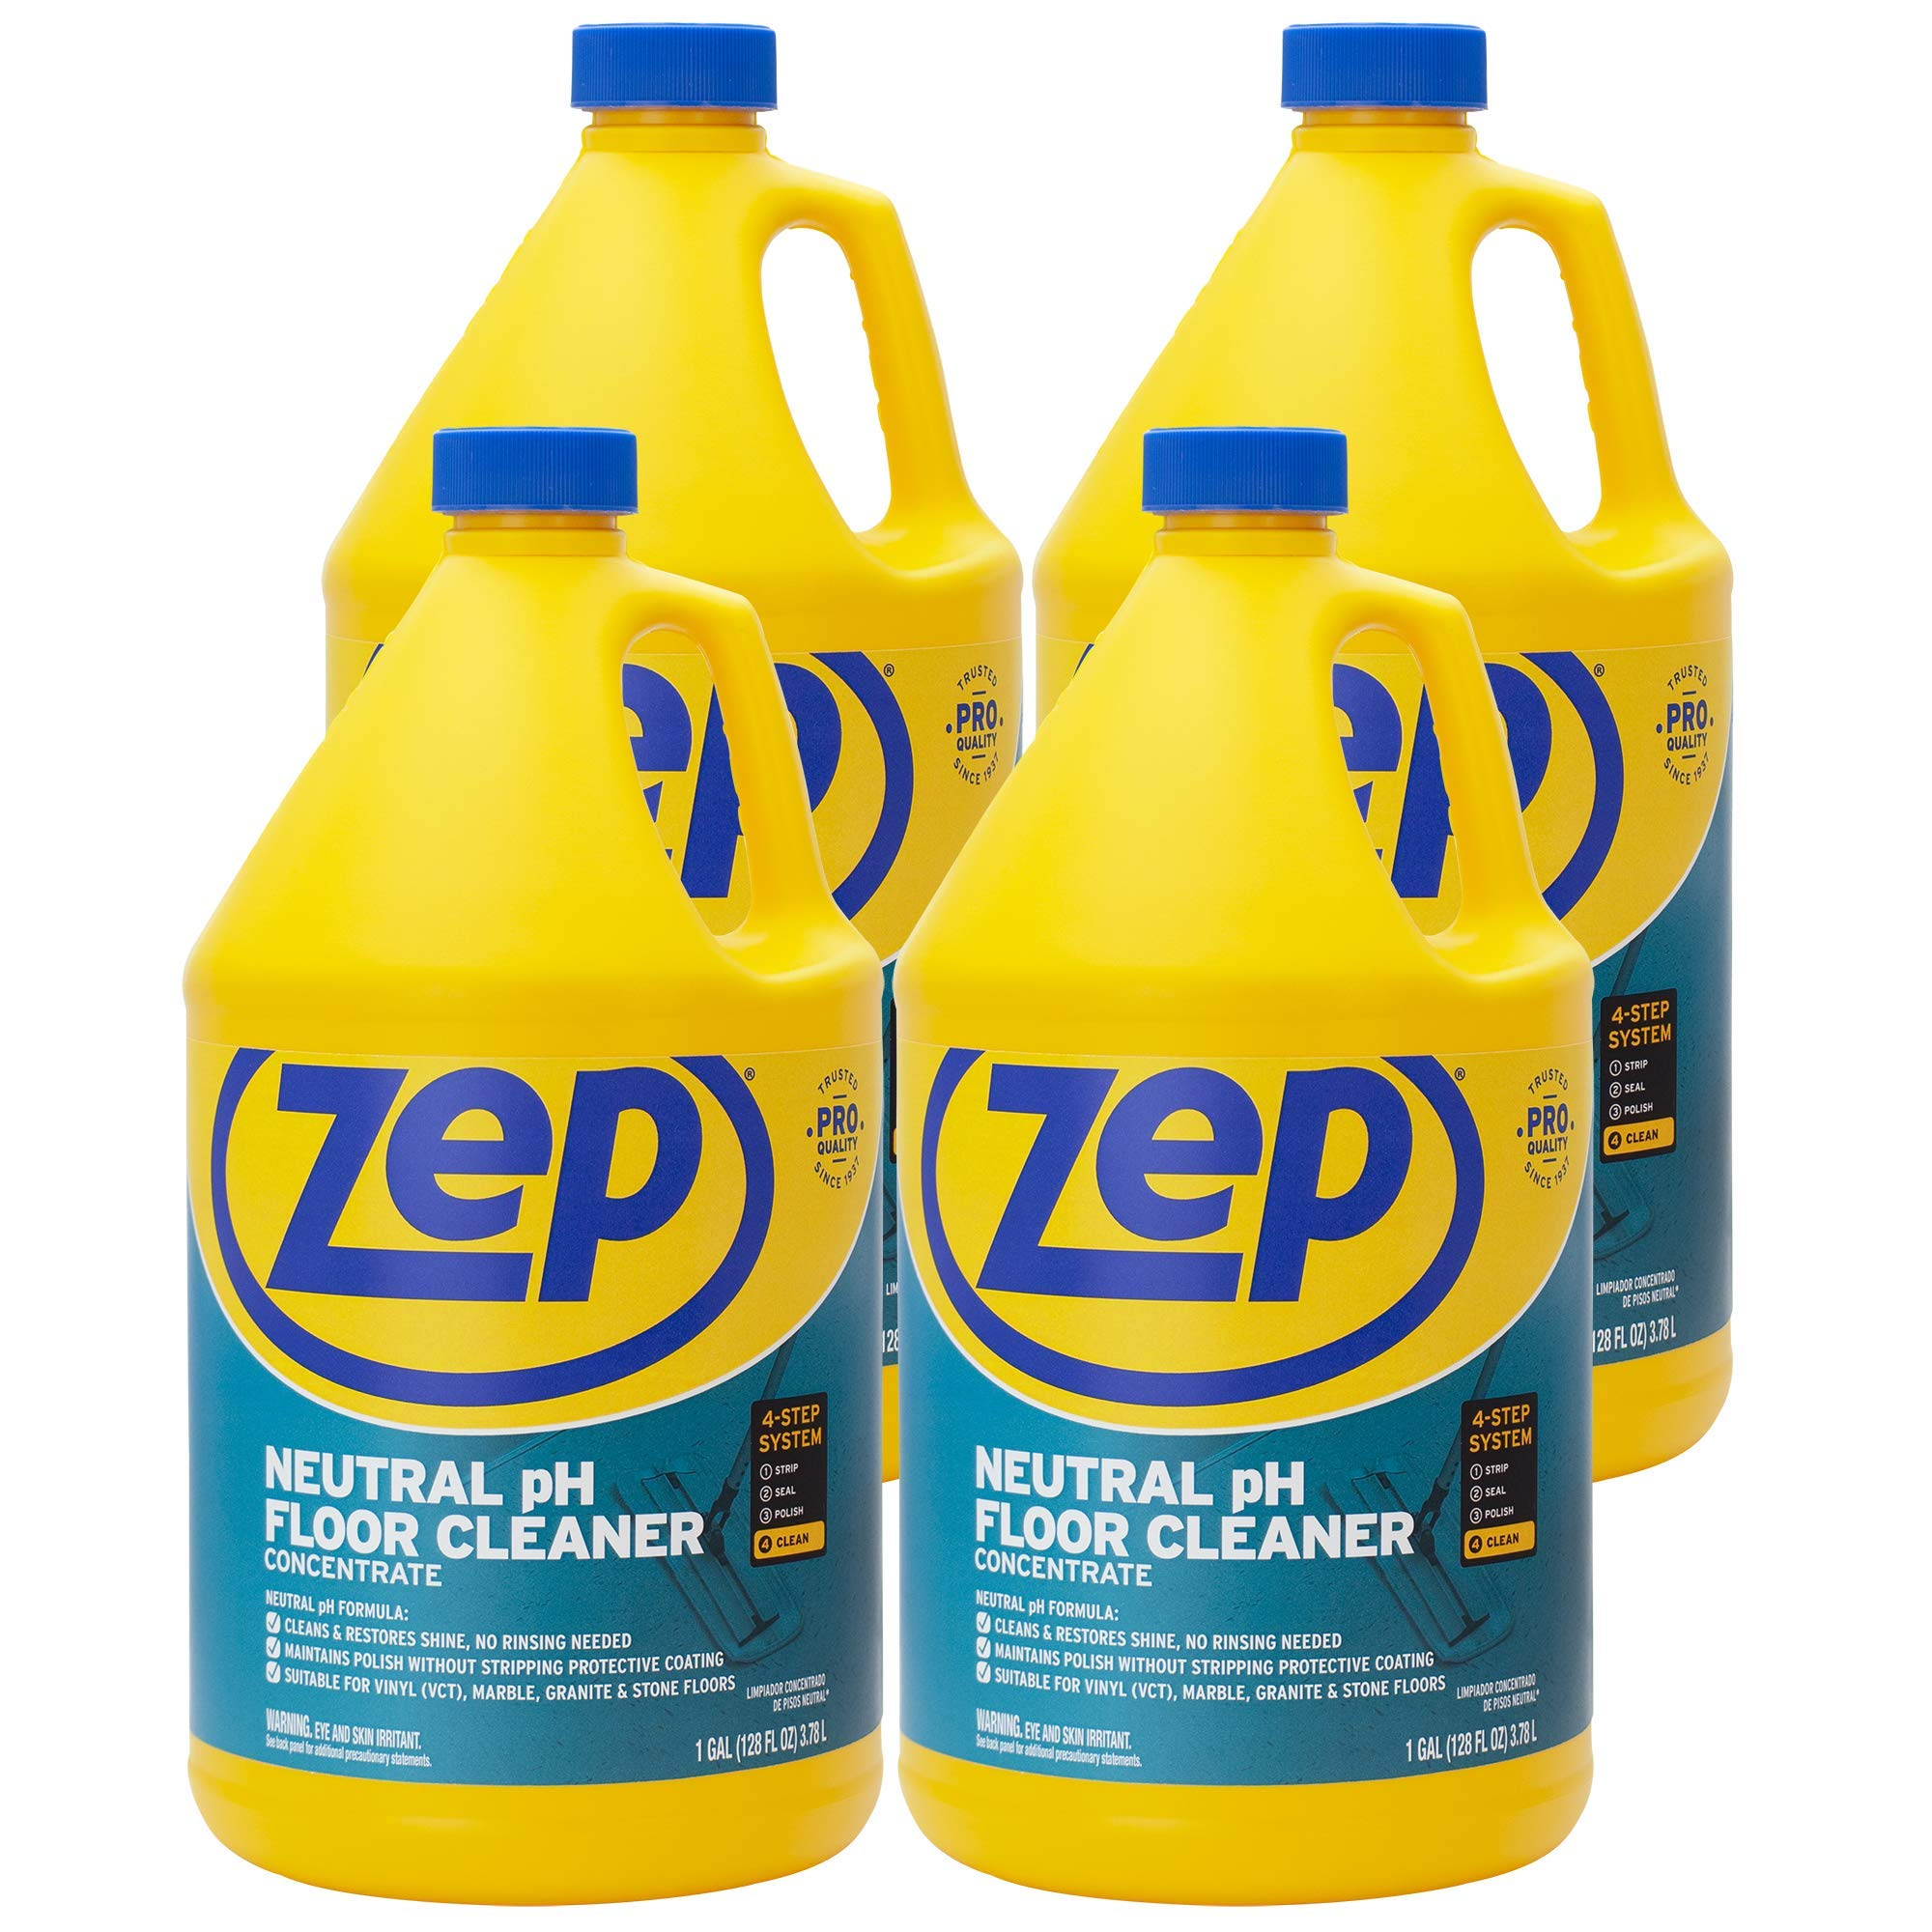 Zep Neutral pH Floor Cleaner 1 Gallon (Case of 4) ZUNEUT128 - Pro Trusted All-Purpose Floor Cleaner